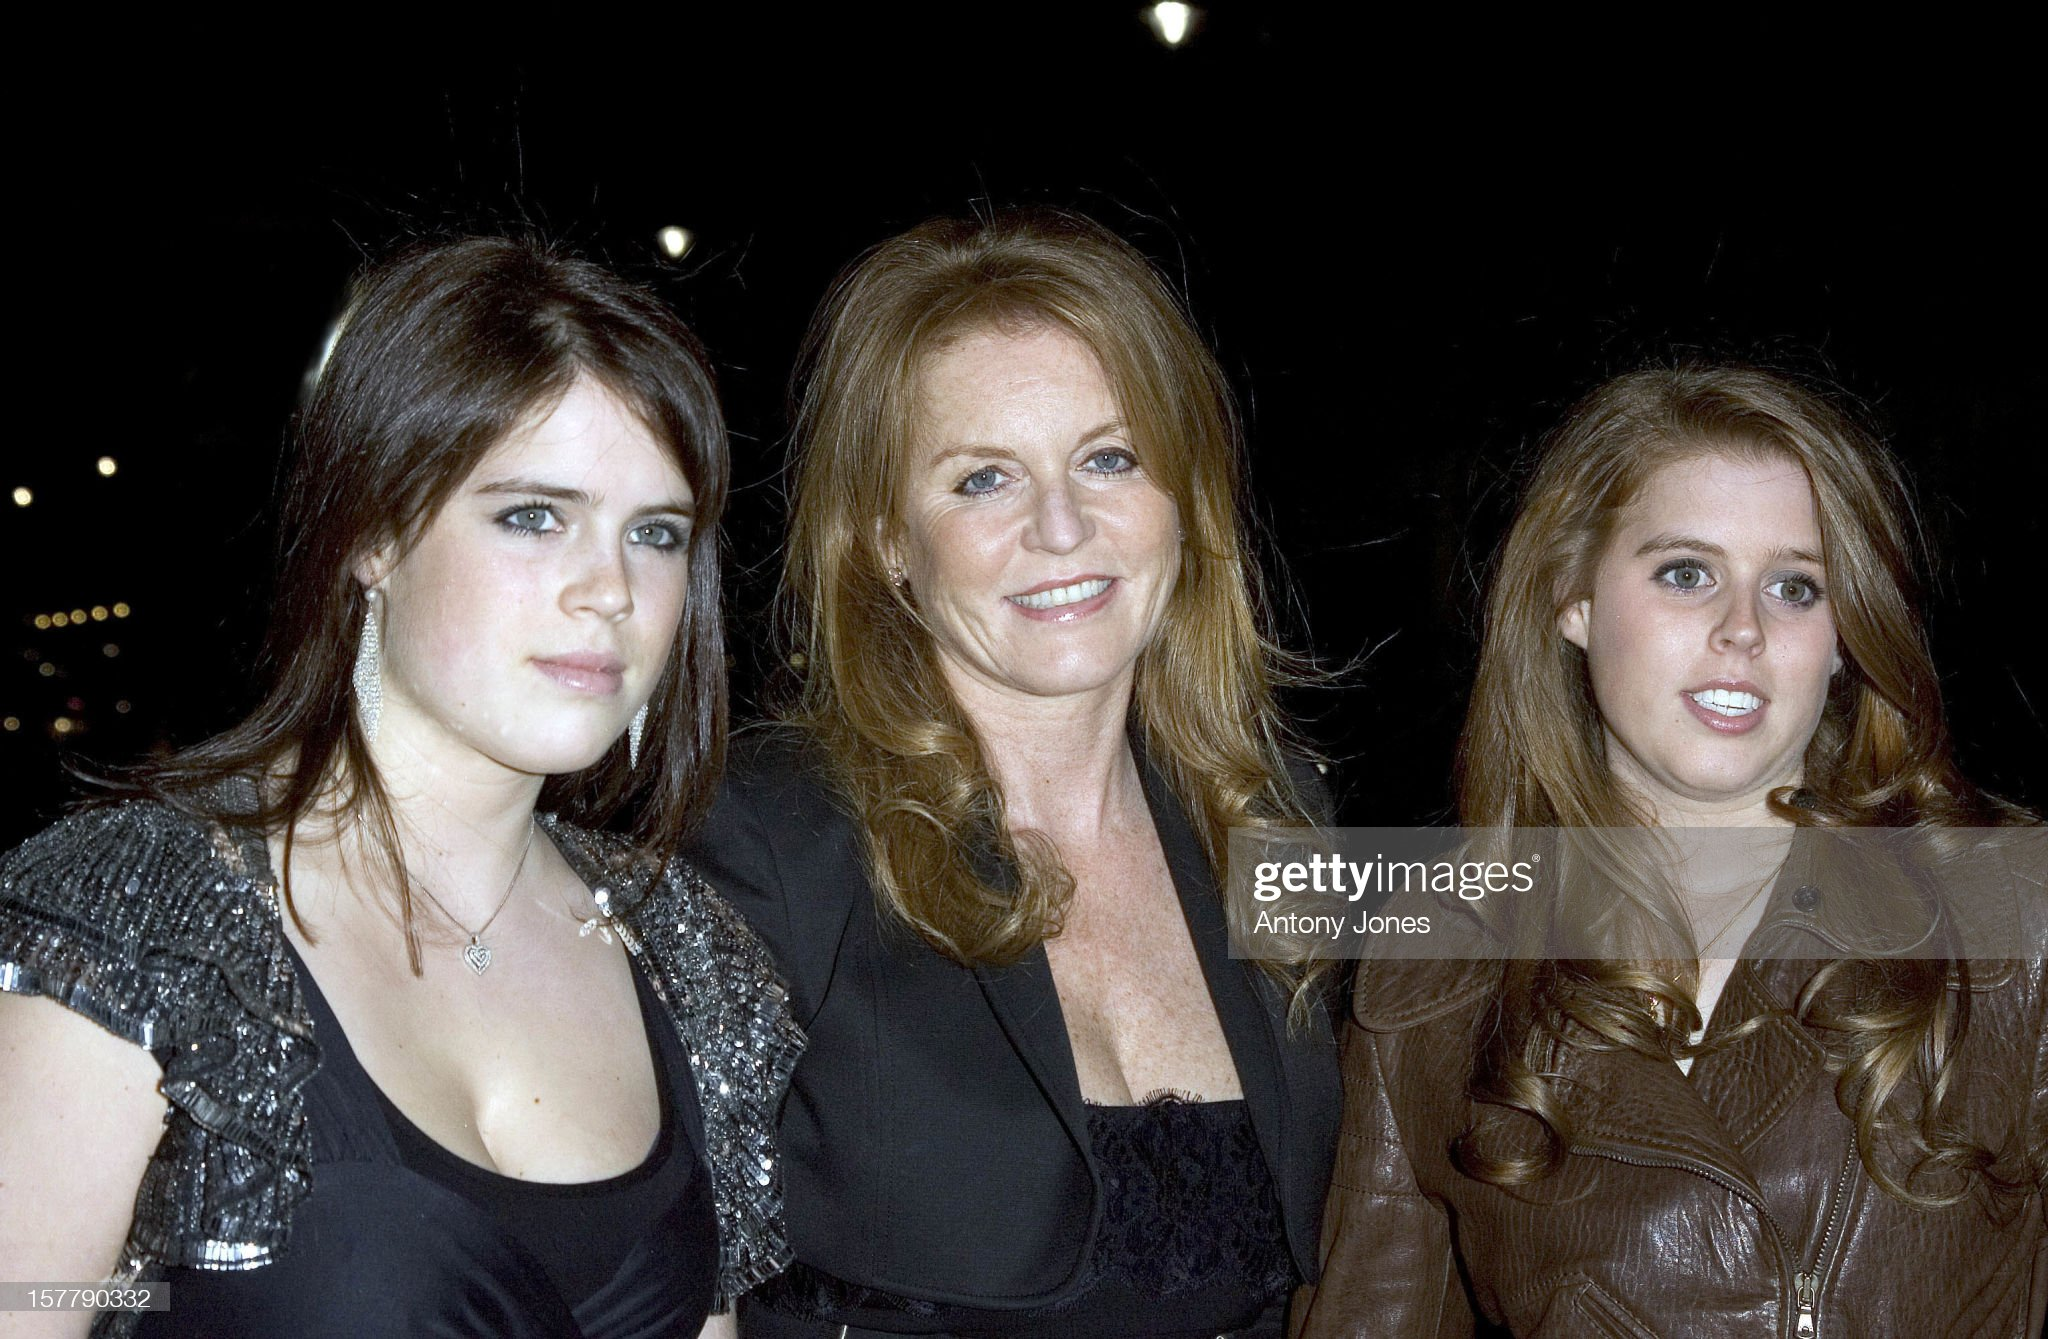 Princess Eugenie, The Duchess Of York, And Princess Beatrice Arrive At The Fireh : News Photo